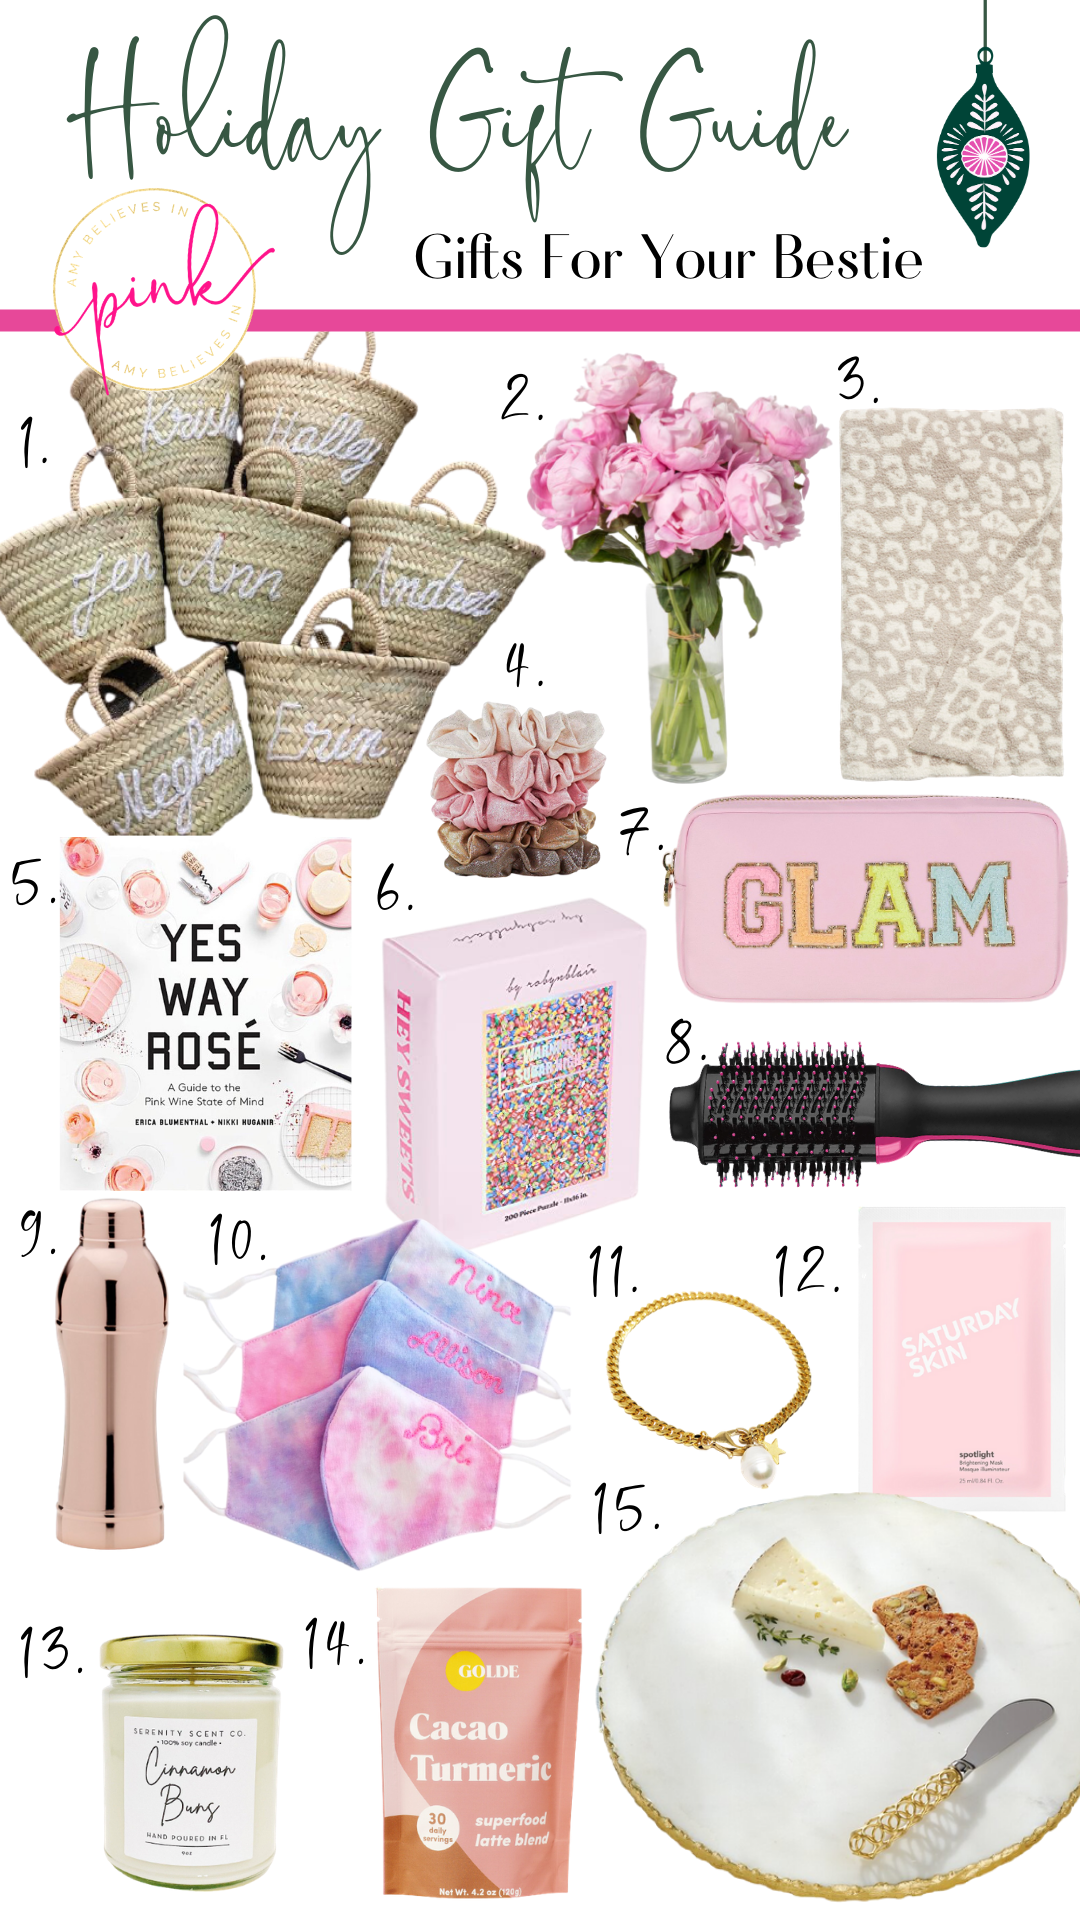 Holiday Gift Guide 2020 for Your Best Friend